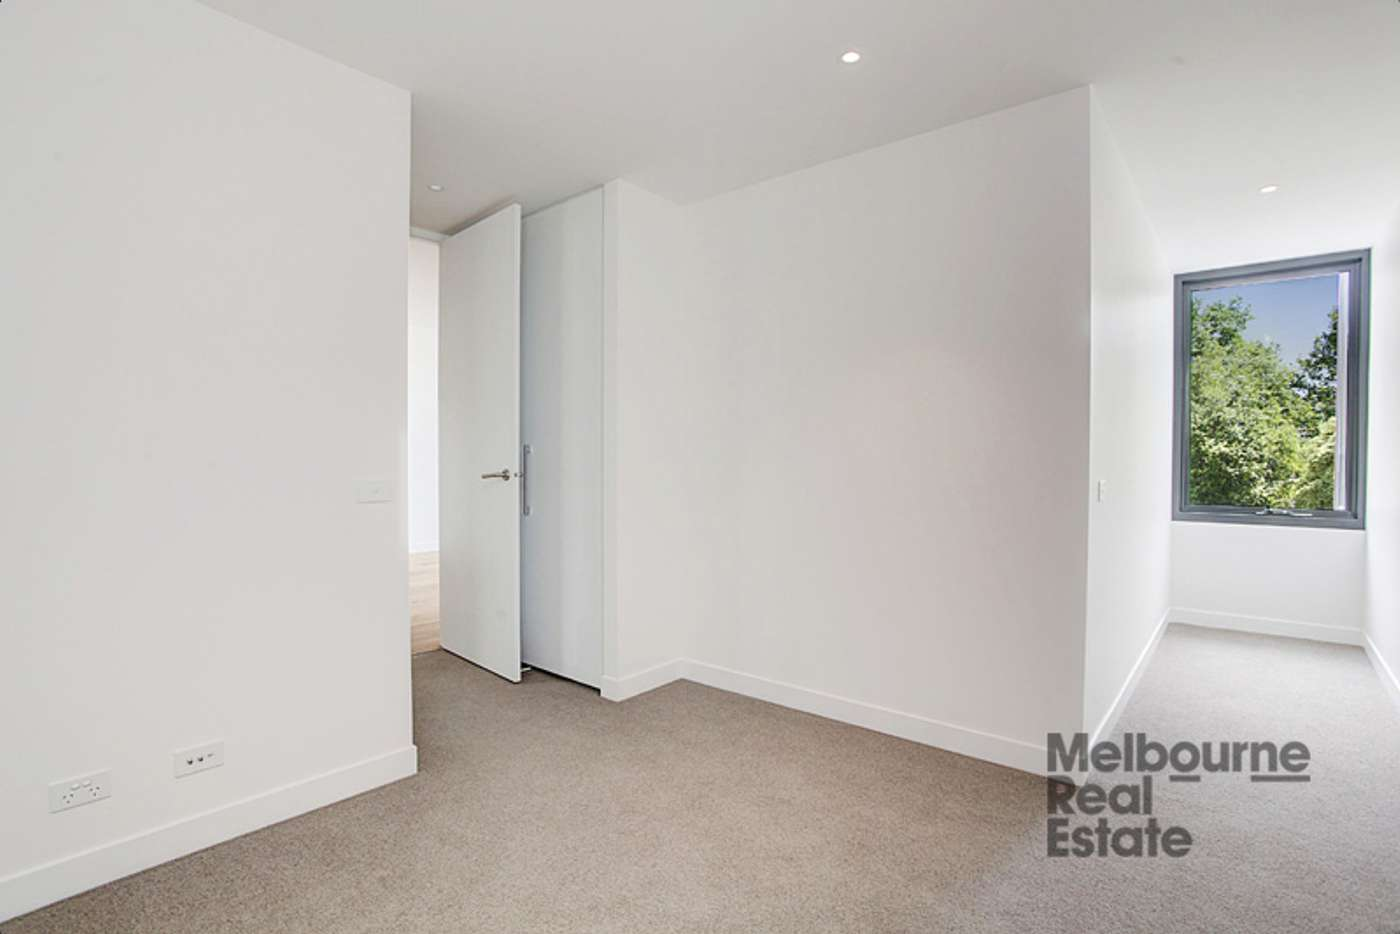 Fifth view of Homely apartment listing, 101/62-64 Station Street, Fairfield VIC 3078